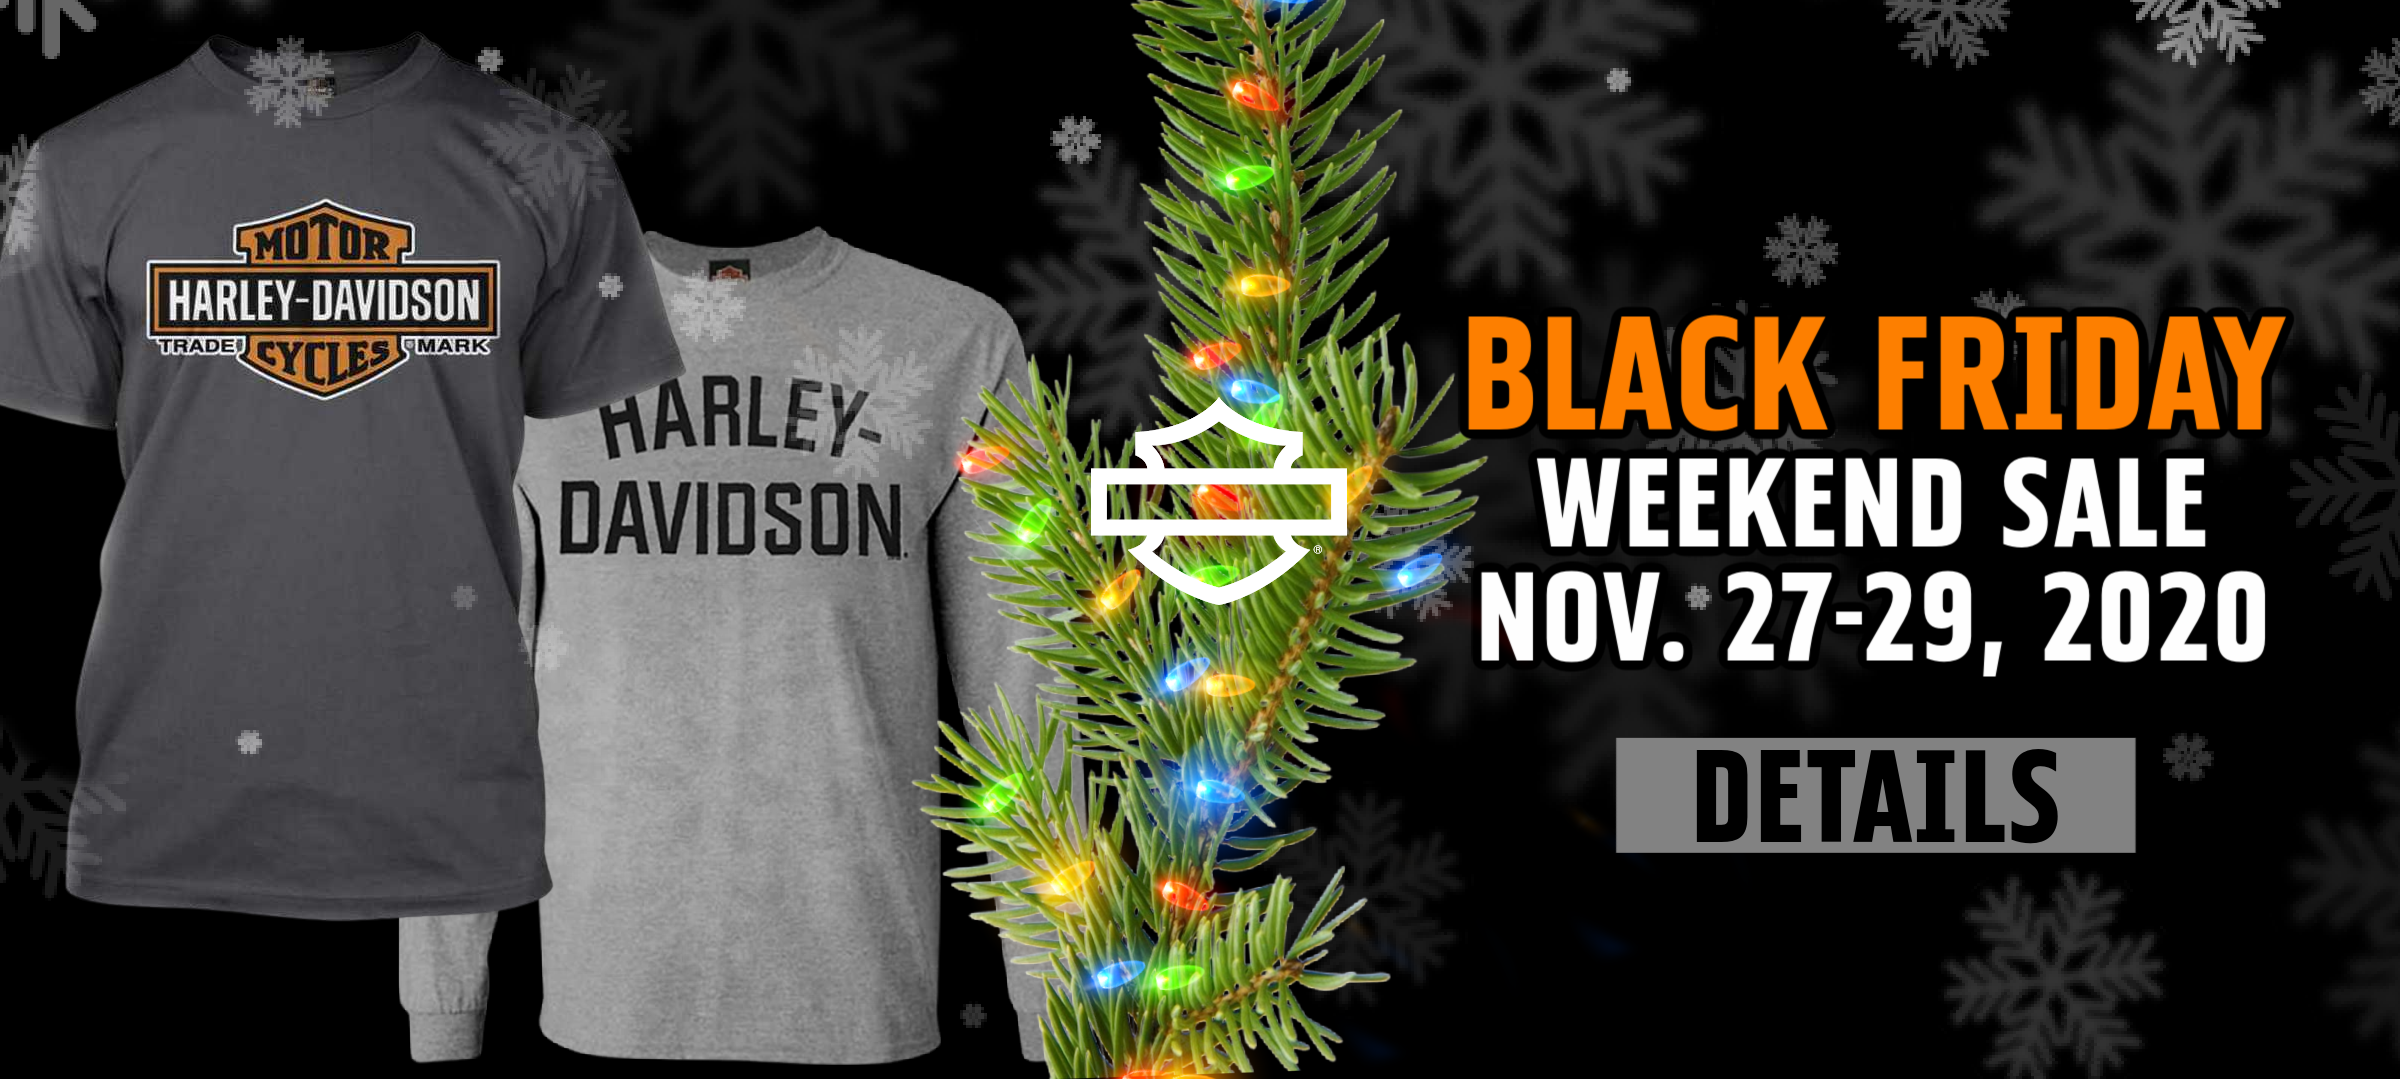 blackfriday_weekendsale